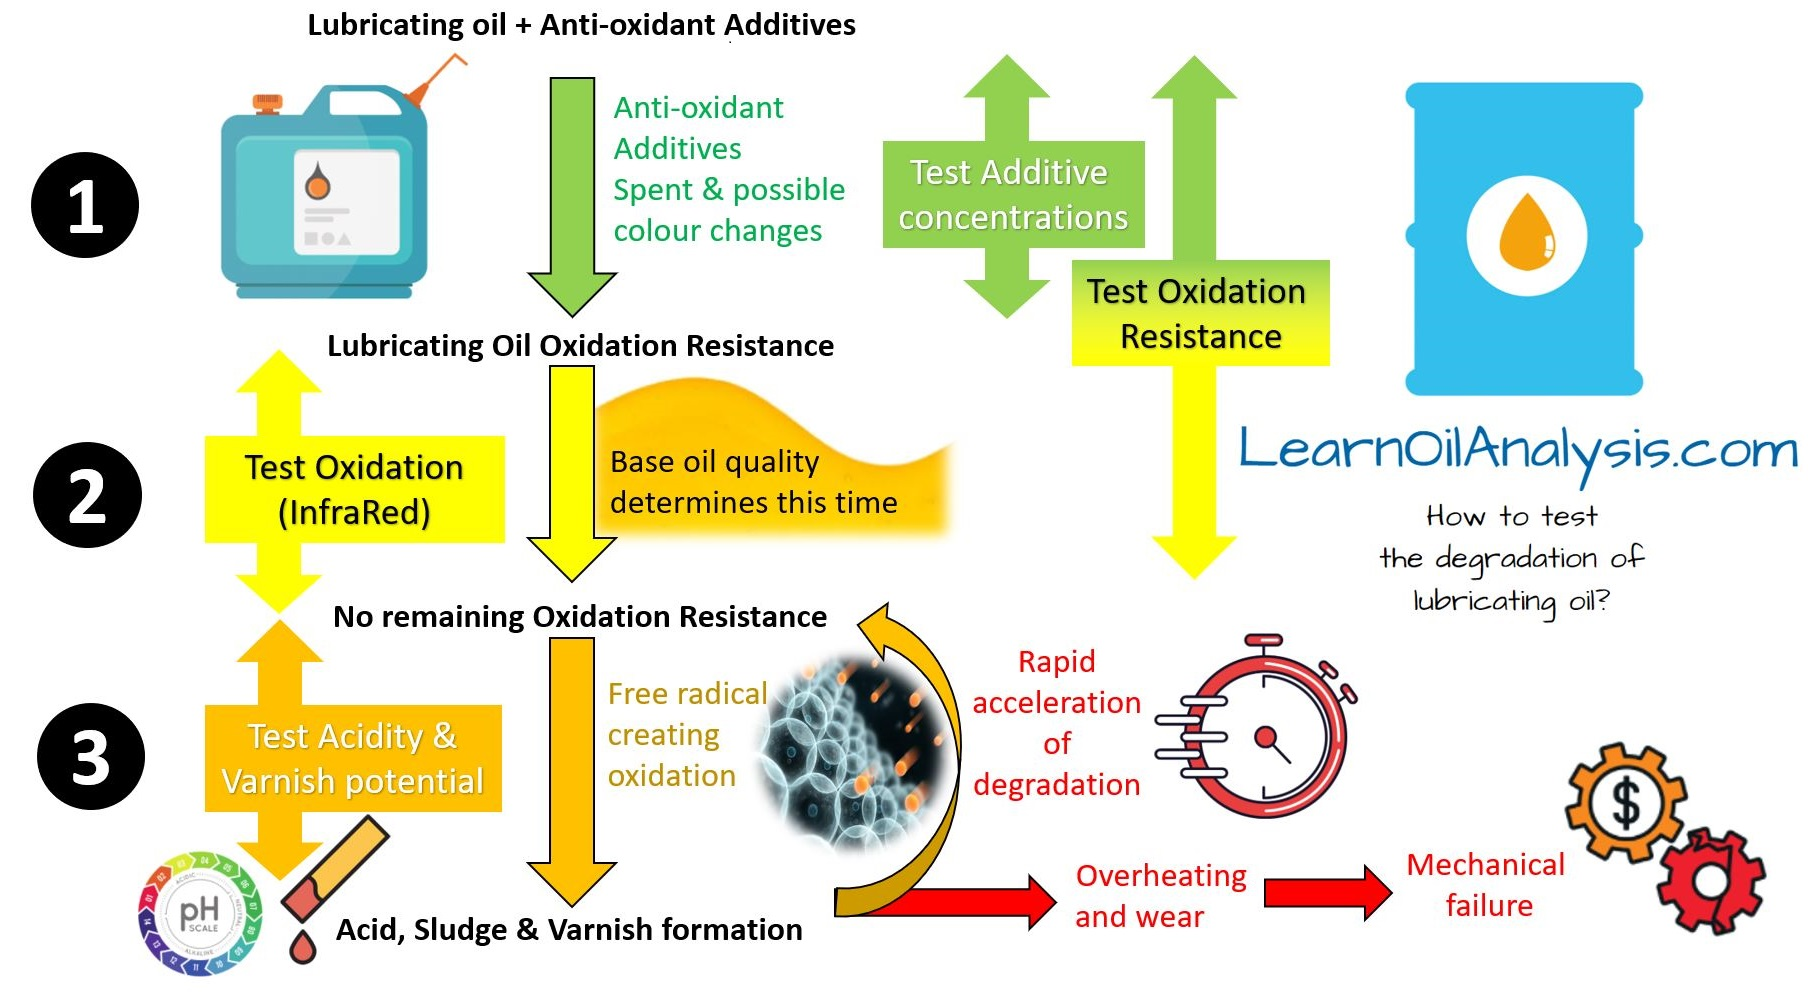 lubricating oil degradation and ways to test Is there a single test to say how degraded a lubricating oil is?